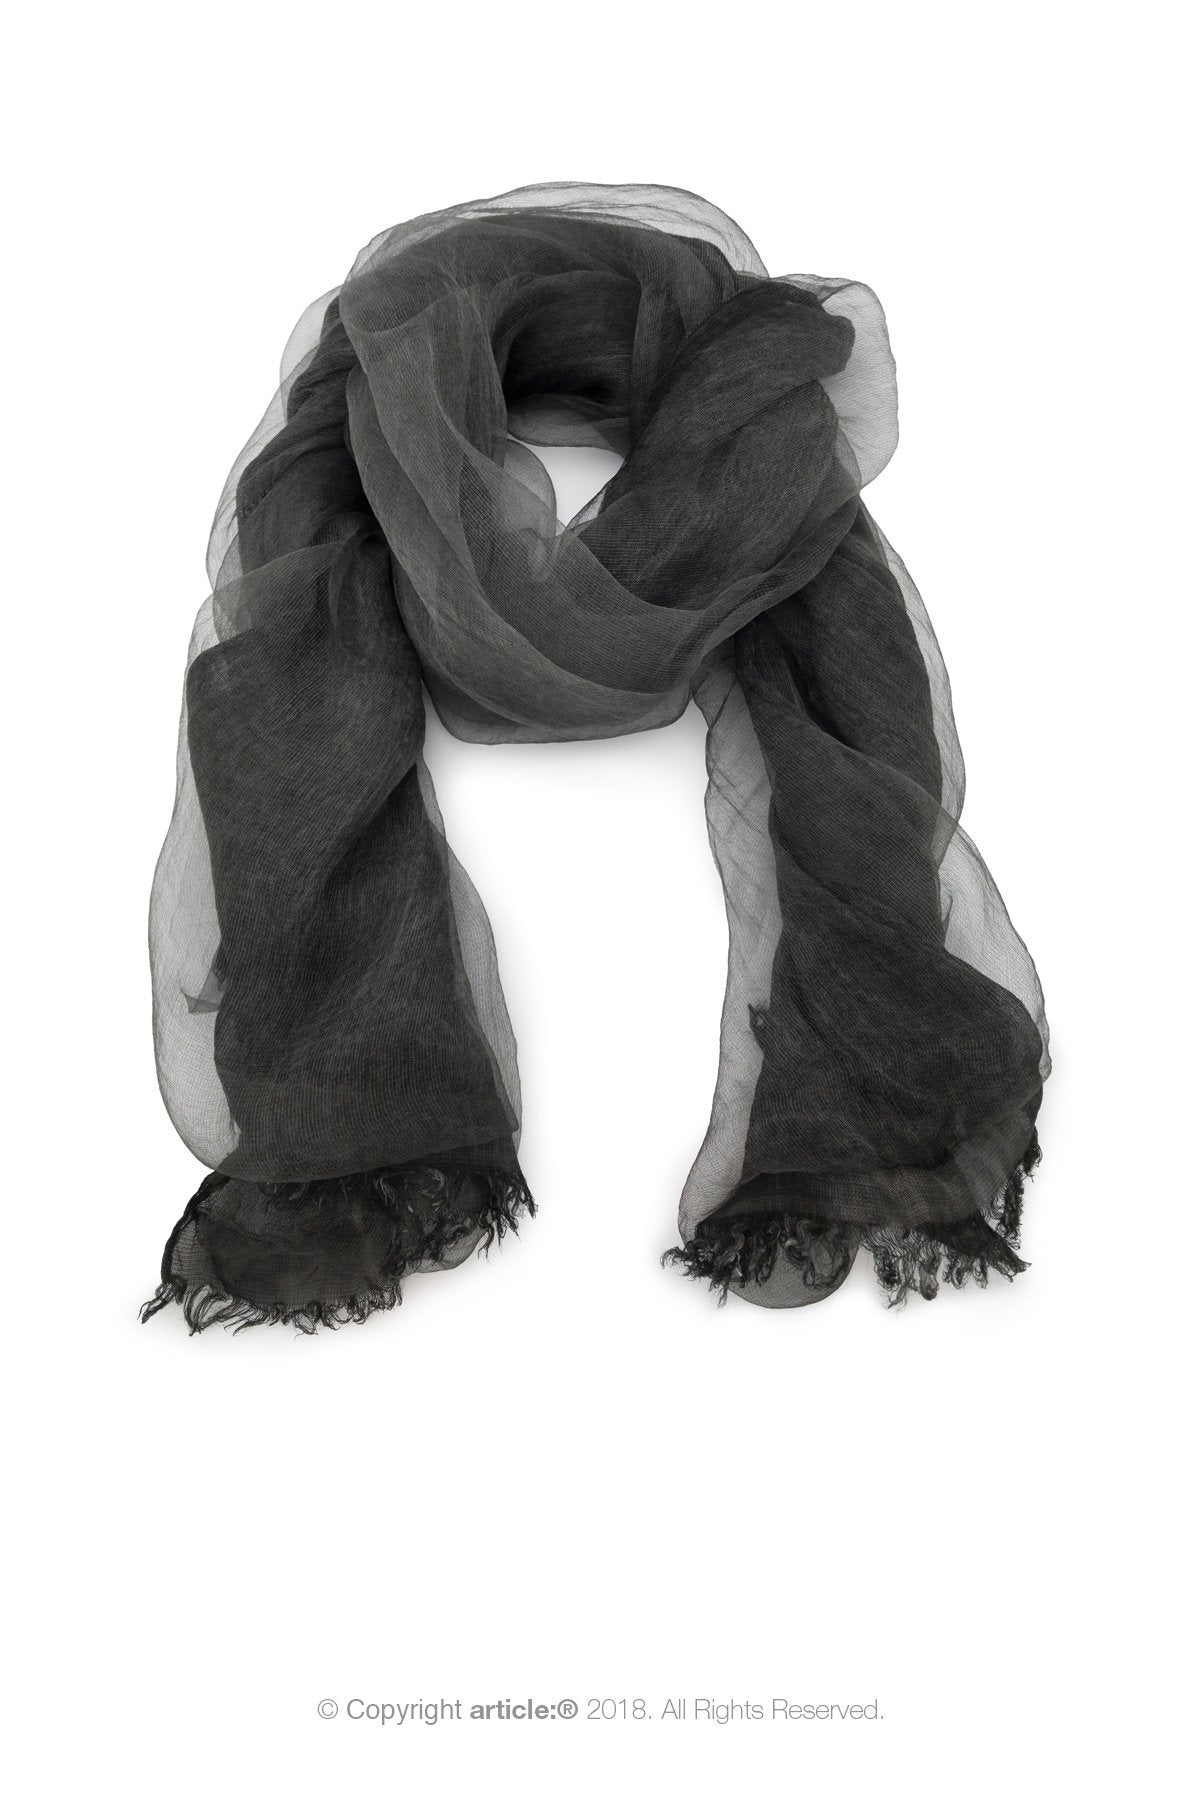 article: #900 Scarf / Wrap - Anthracite